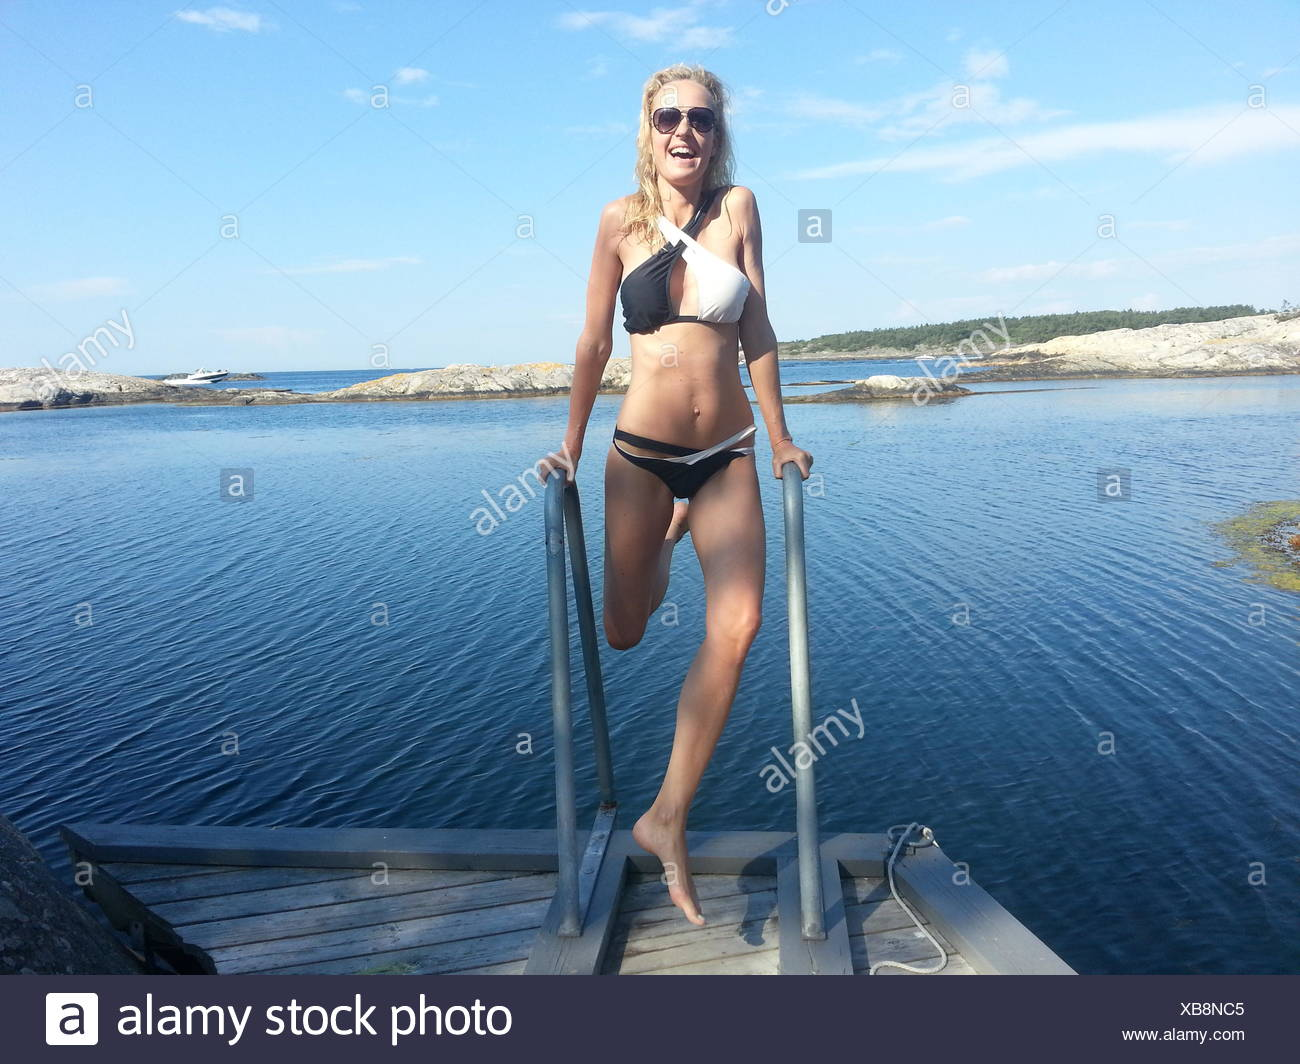 Woman messing about on jetty by fjord, Norway - Stock Image